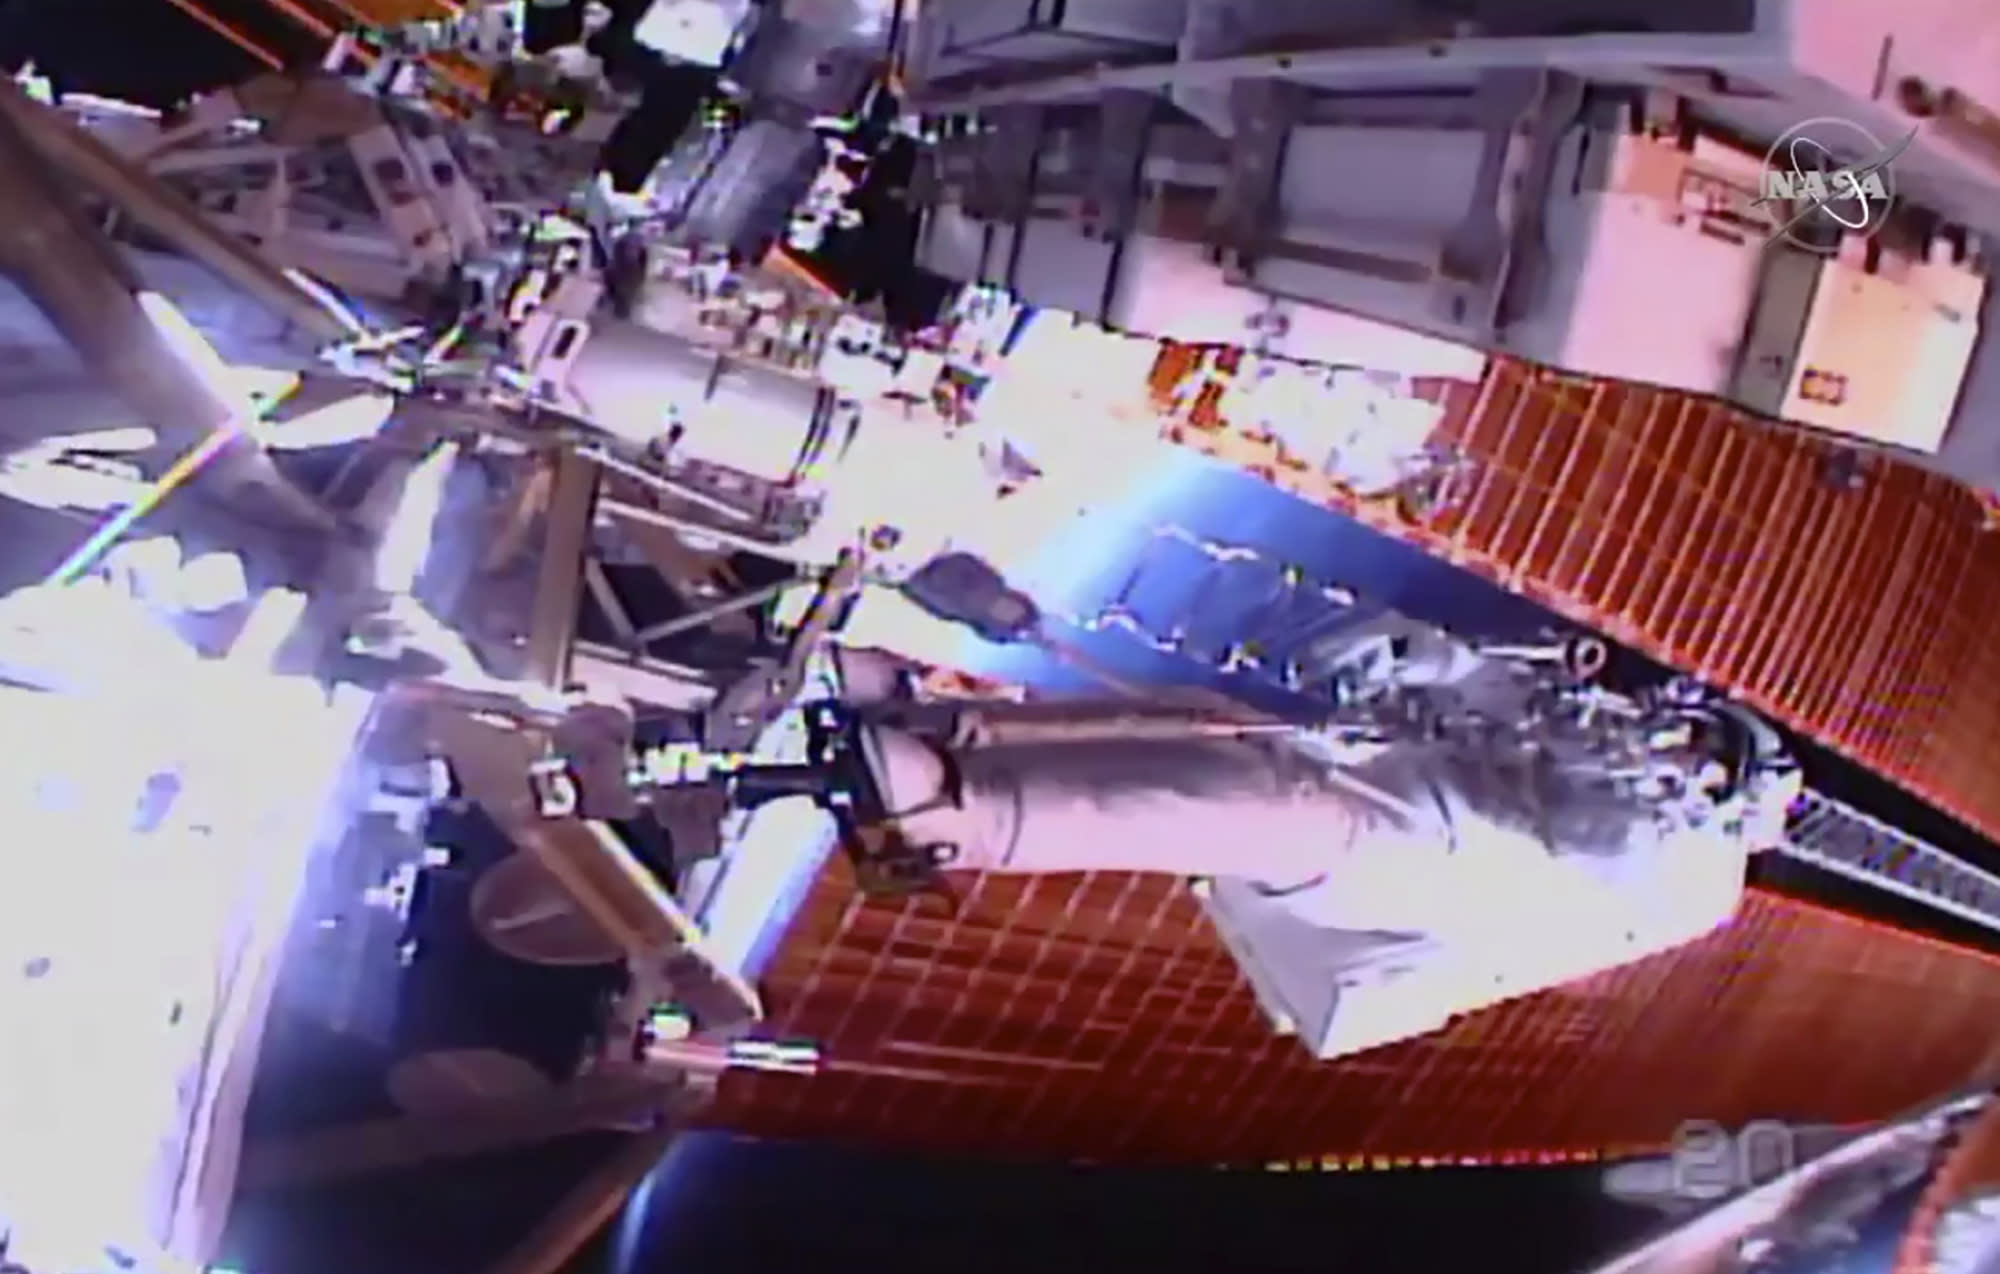 Spacewalking astronauts closing in on final battery swaps outside International Space Station